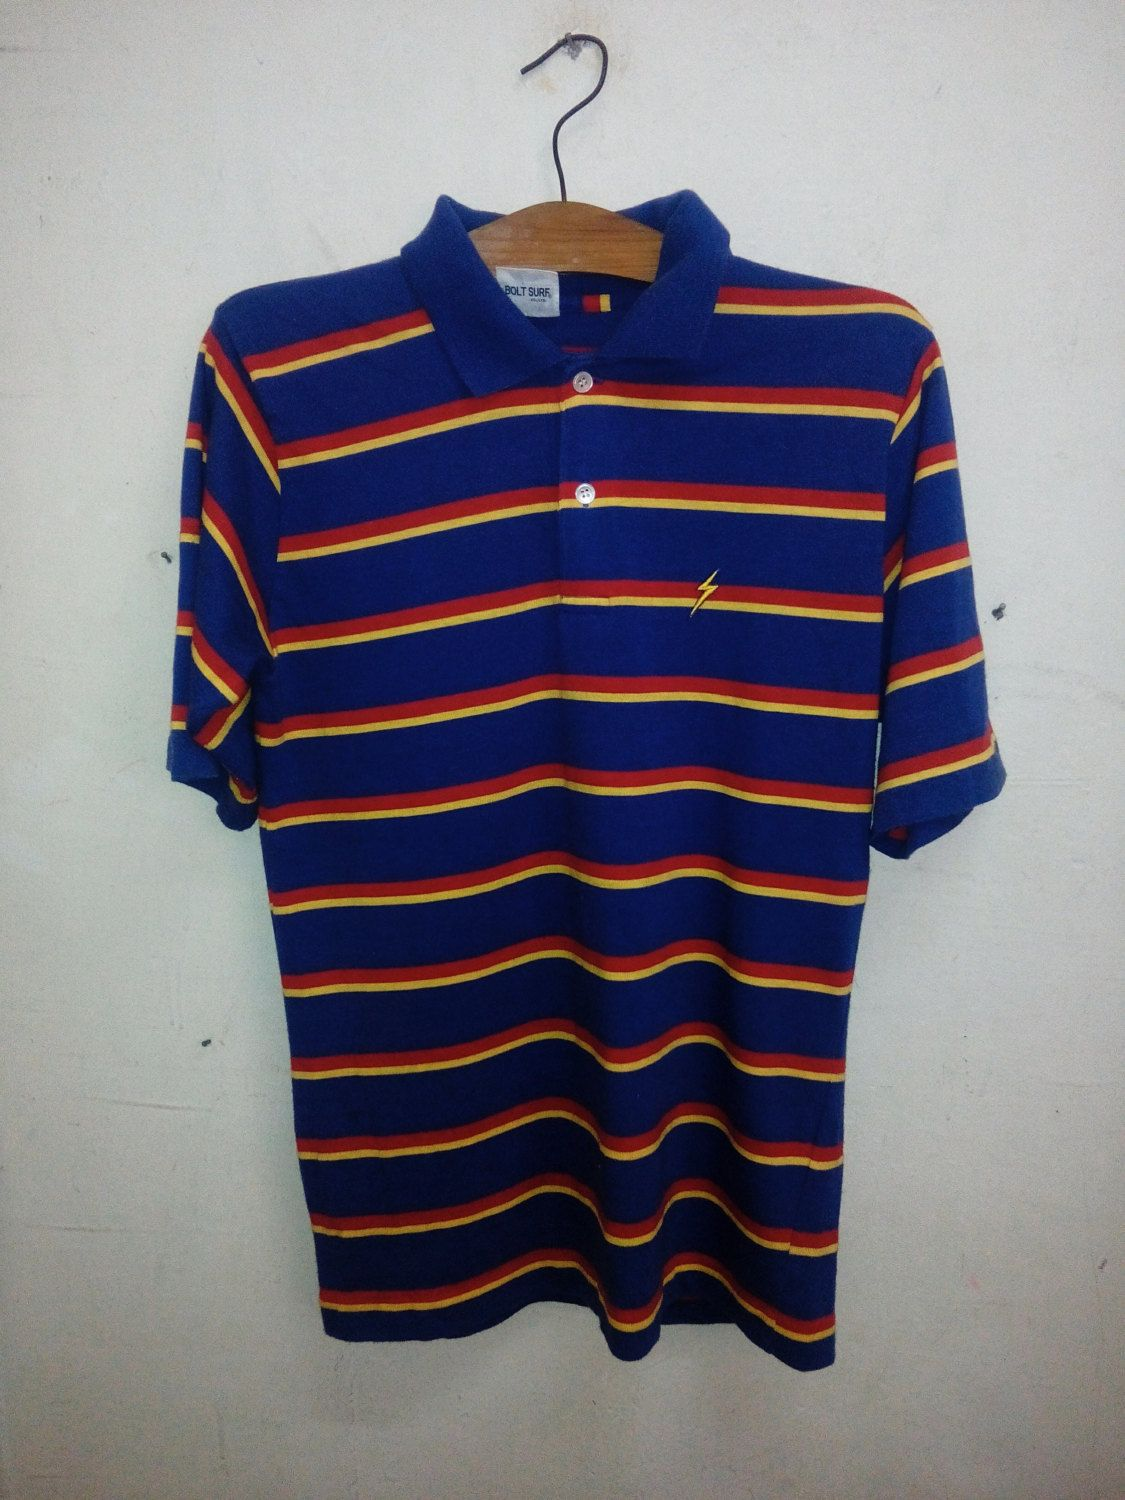 00e268e78fea9 Sale Rare !! Vintage 80's Skate Surf Lightning Bolt Stripes designed ...